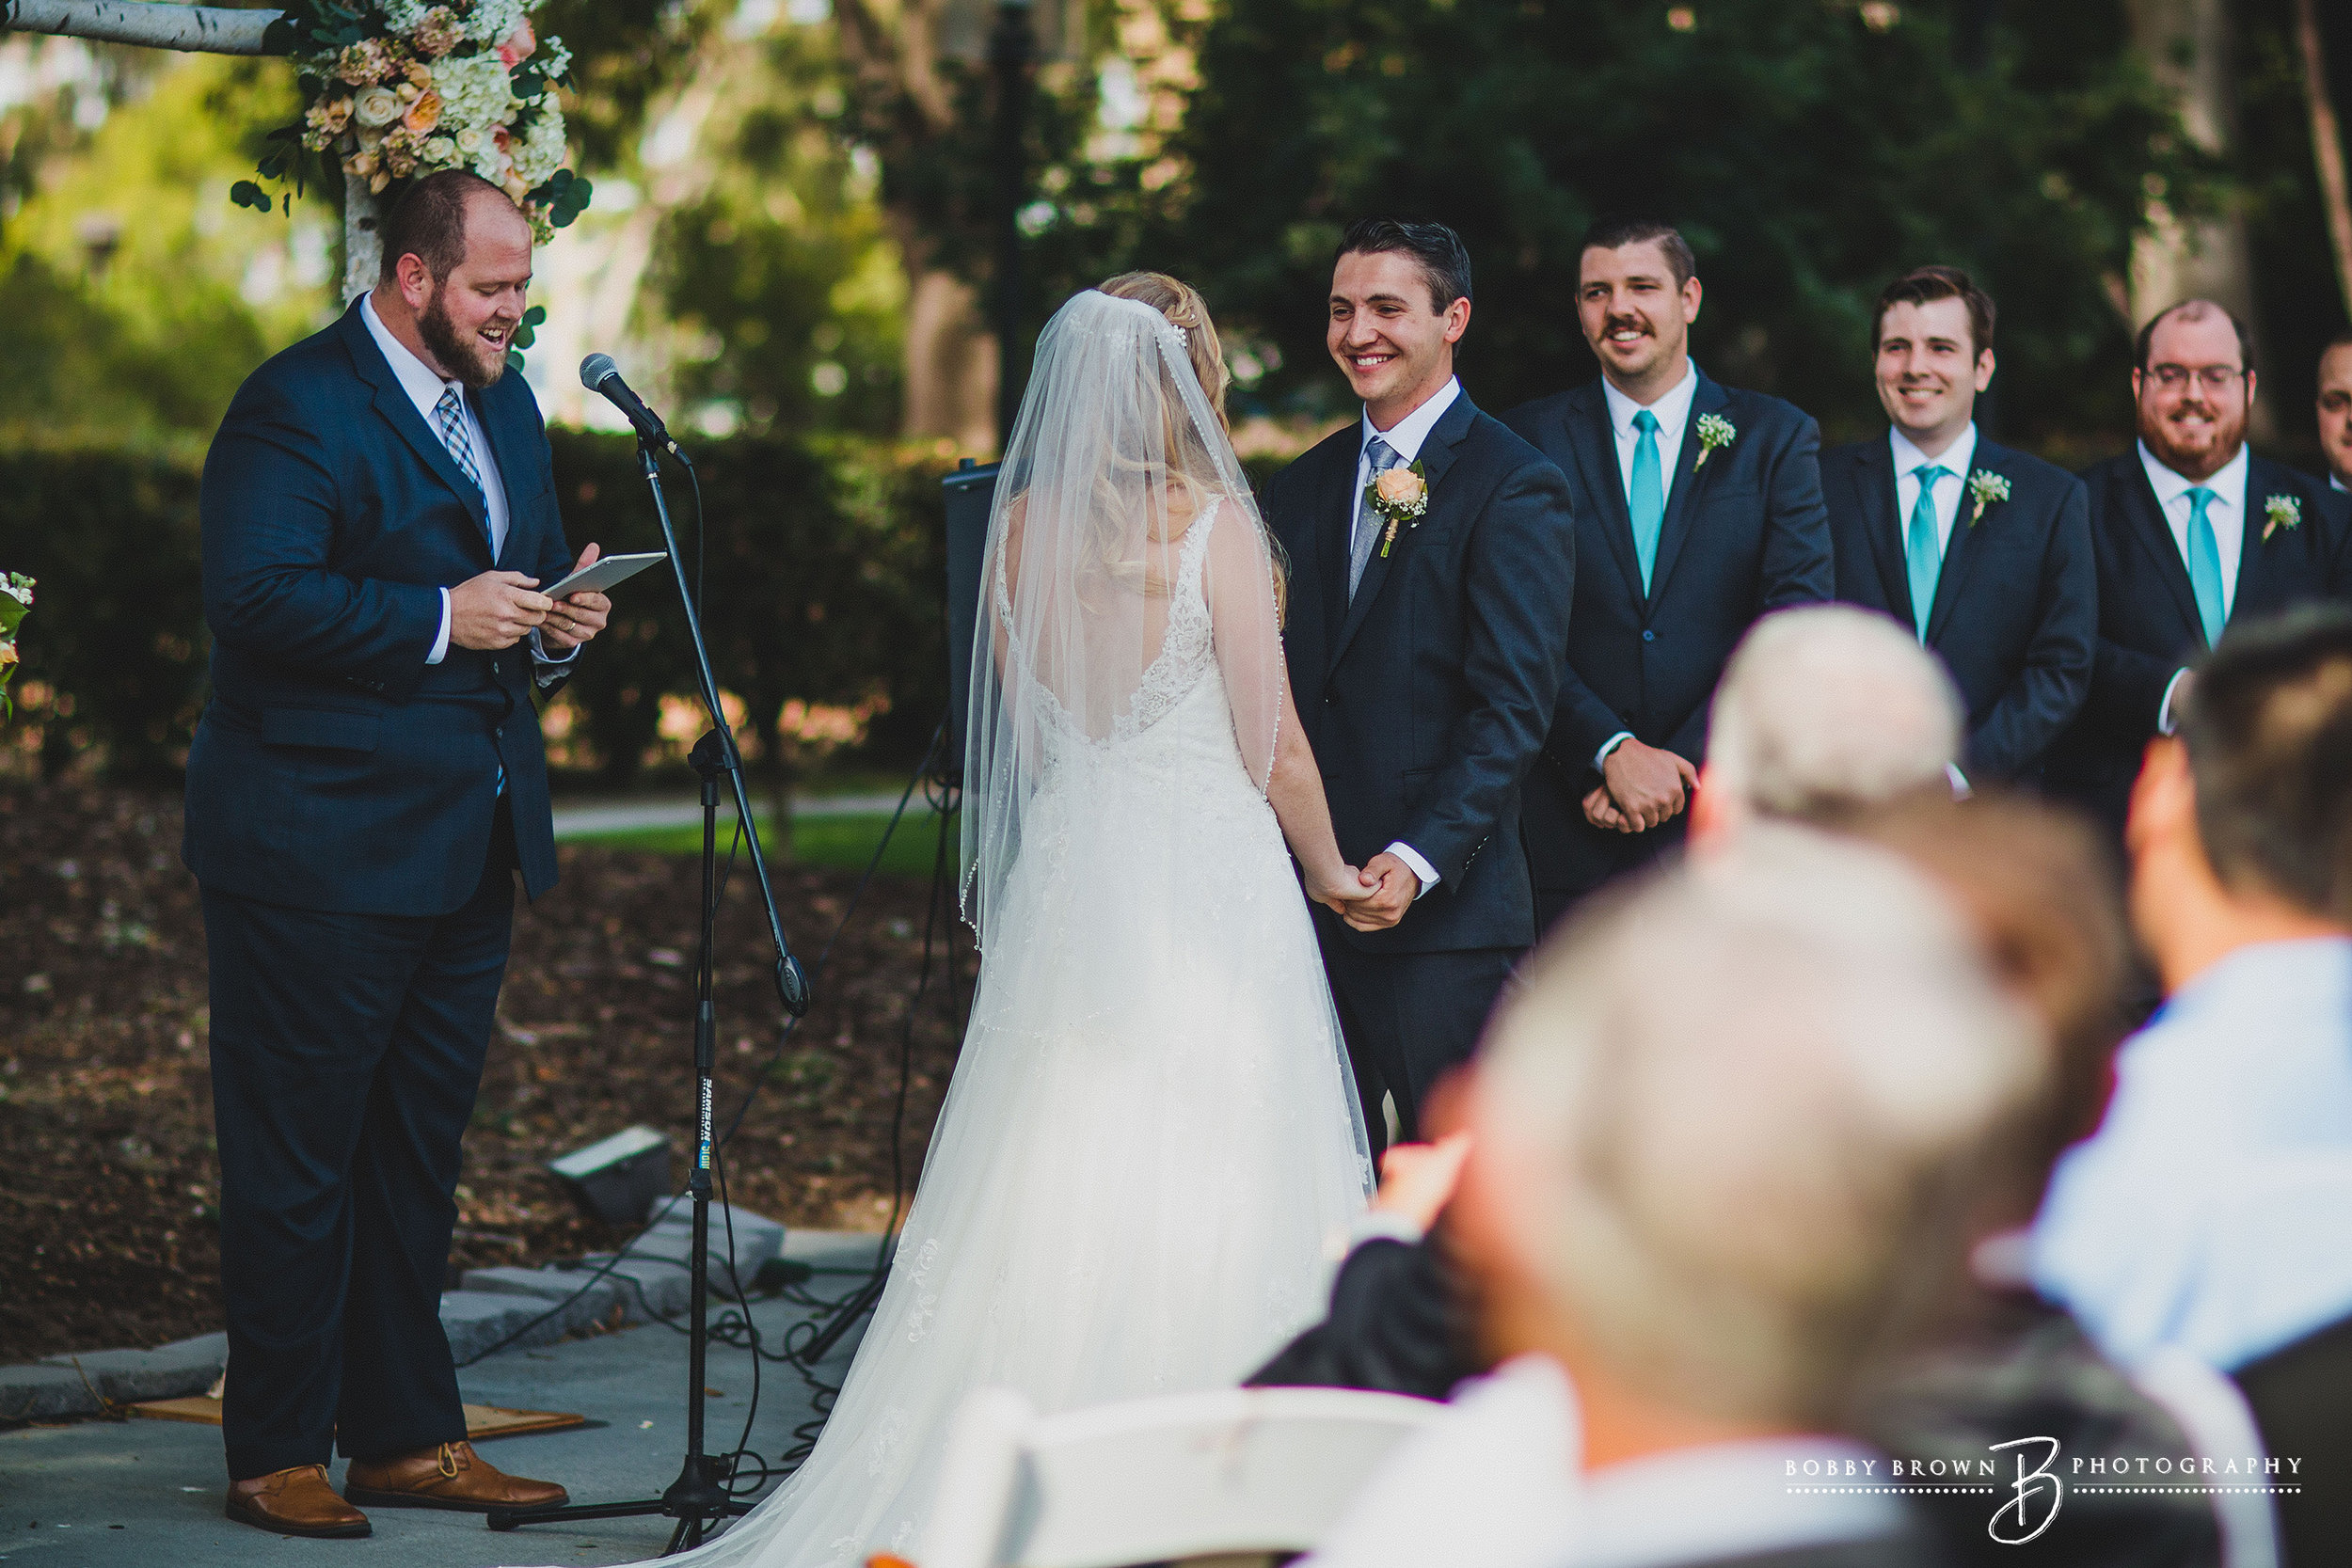 hugginswedding-544.jpg